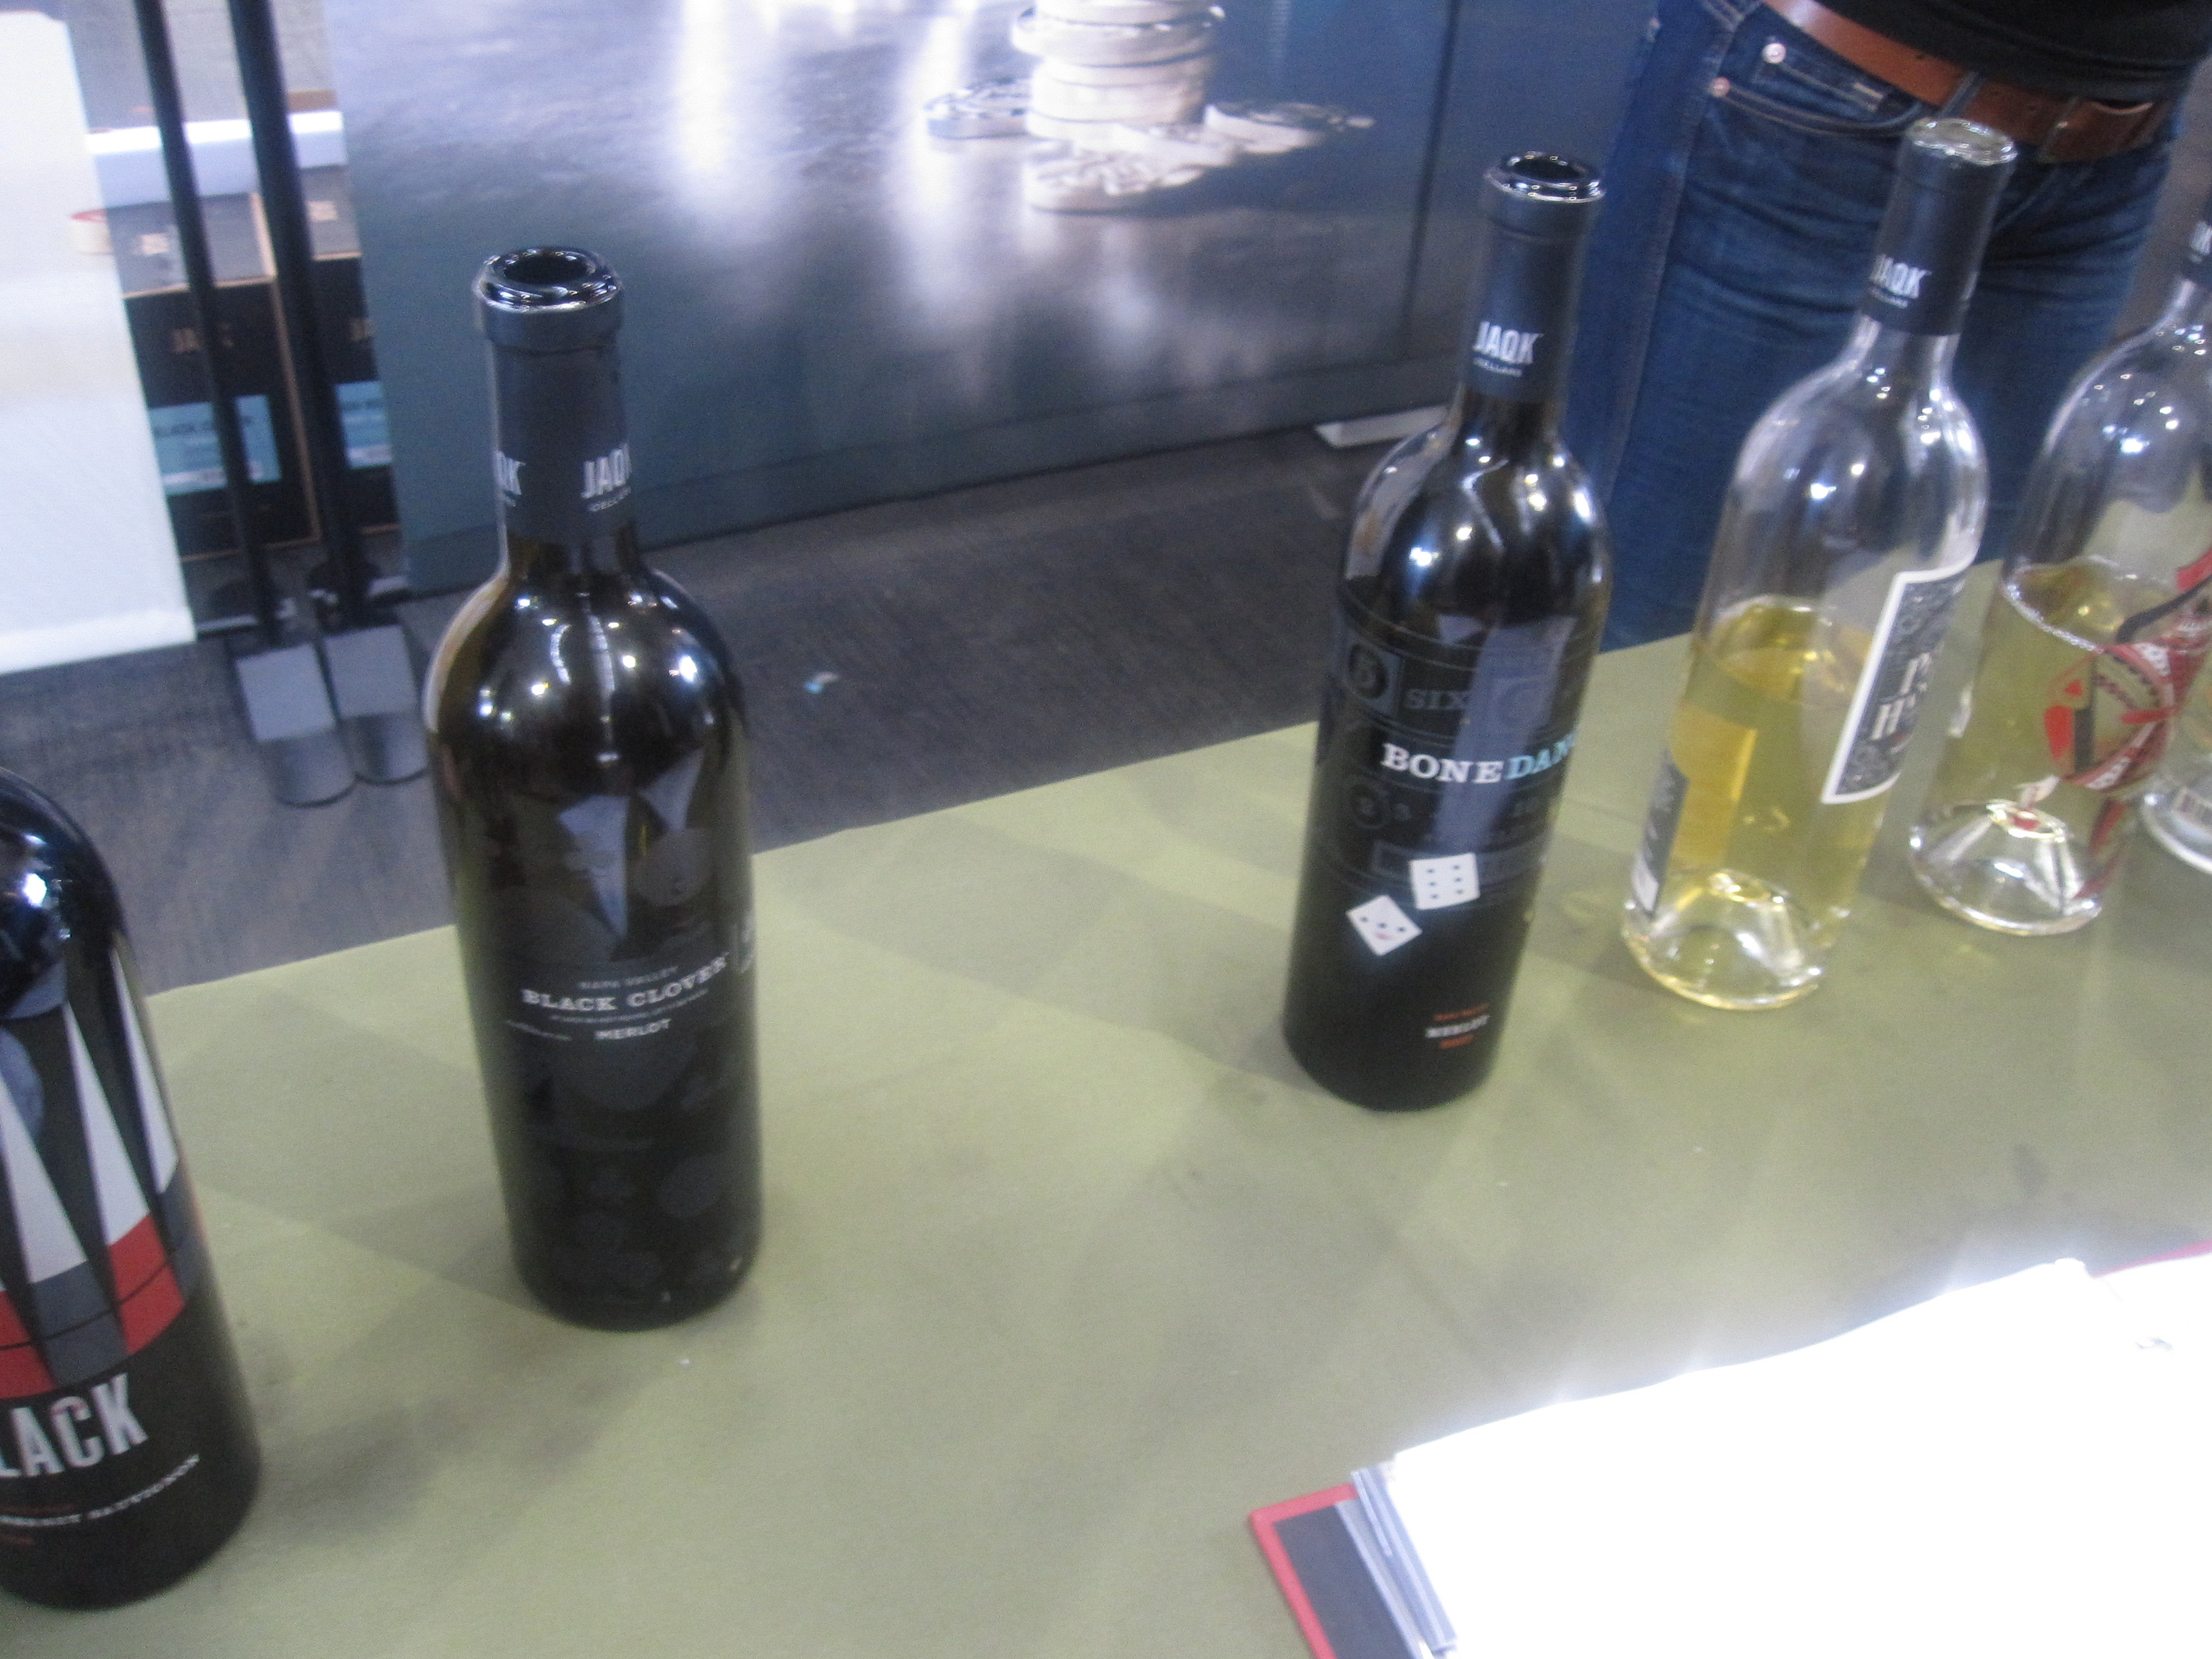 The first wines I spotted on arrival were JAQK's great offerings.